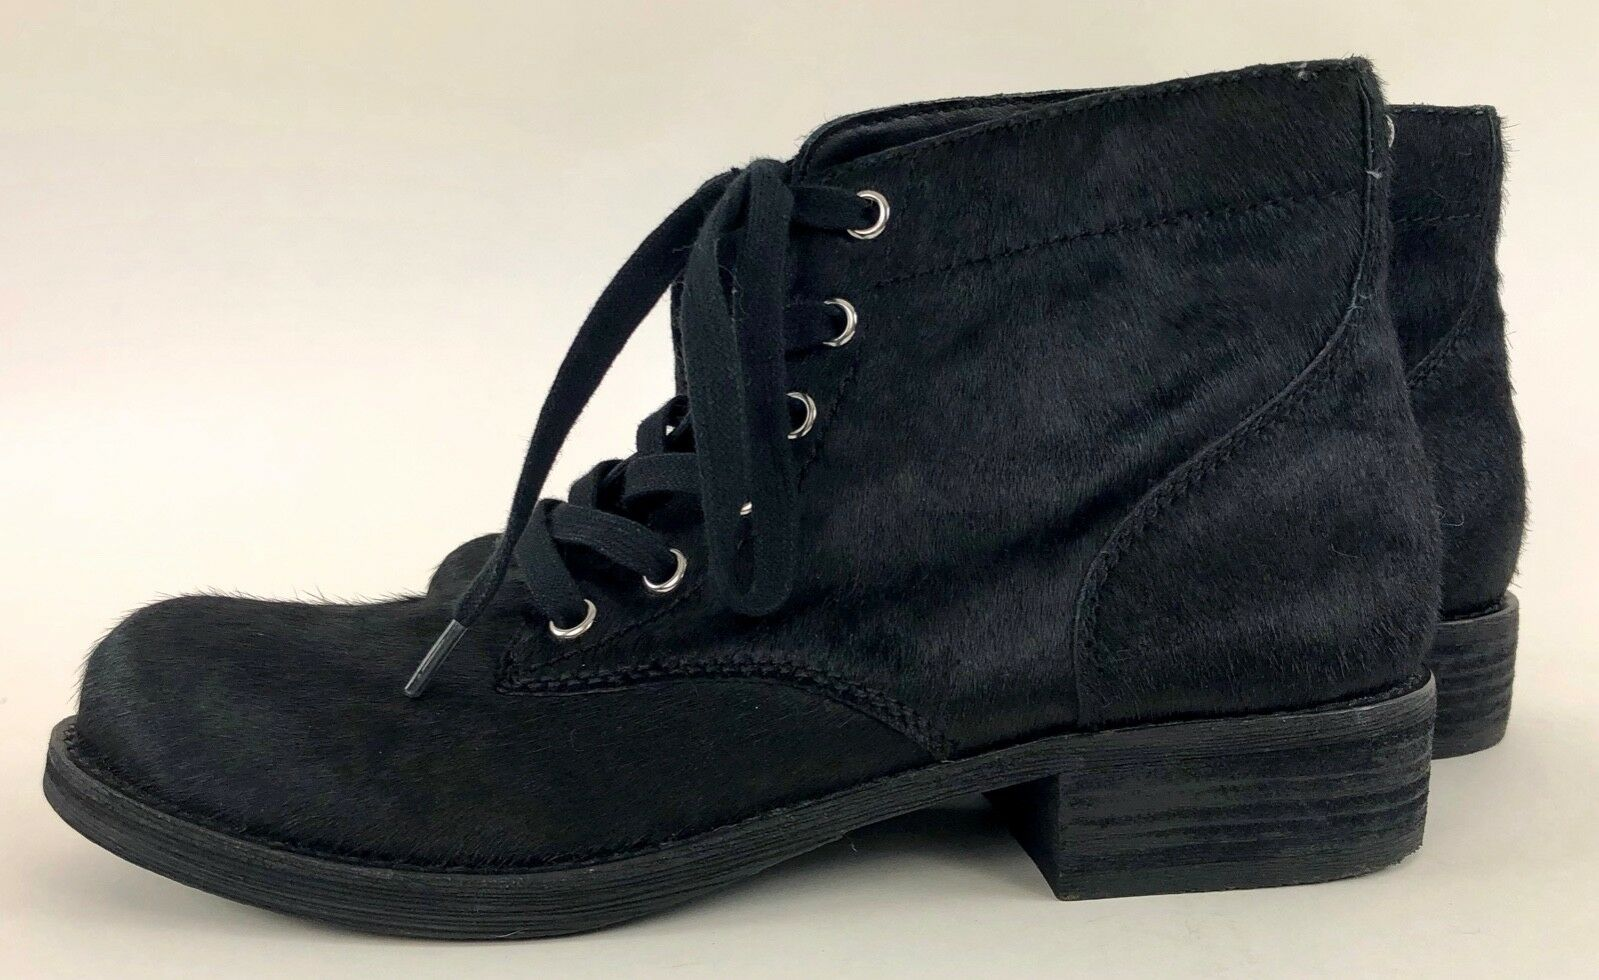 Sam Edelman Bleecker Lace-Up shoes. Black Calf Hair Ankle Boots Sz 8.5m. New WOB